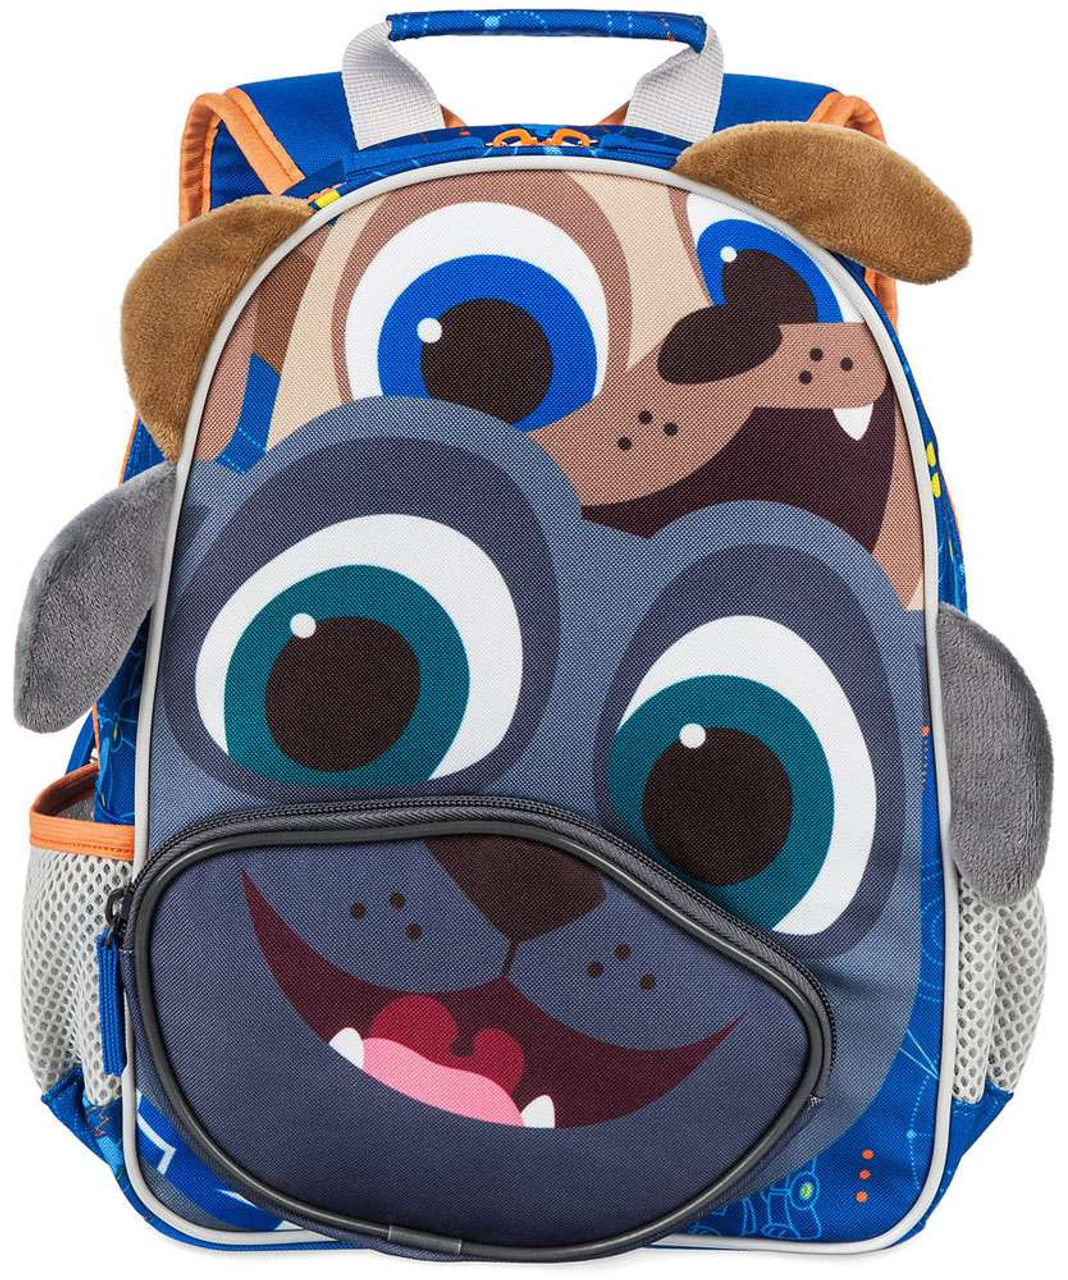 Puppy Dog Pals 12 inch Backpack